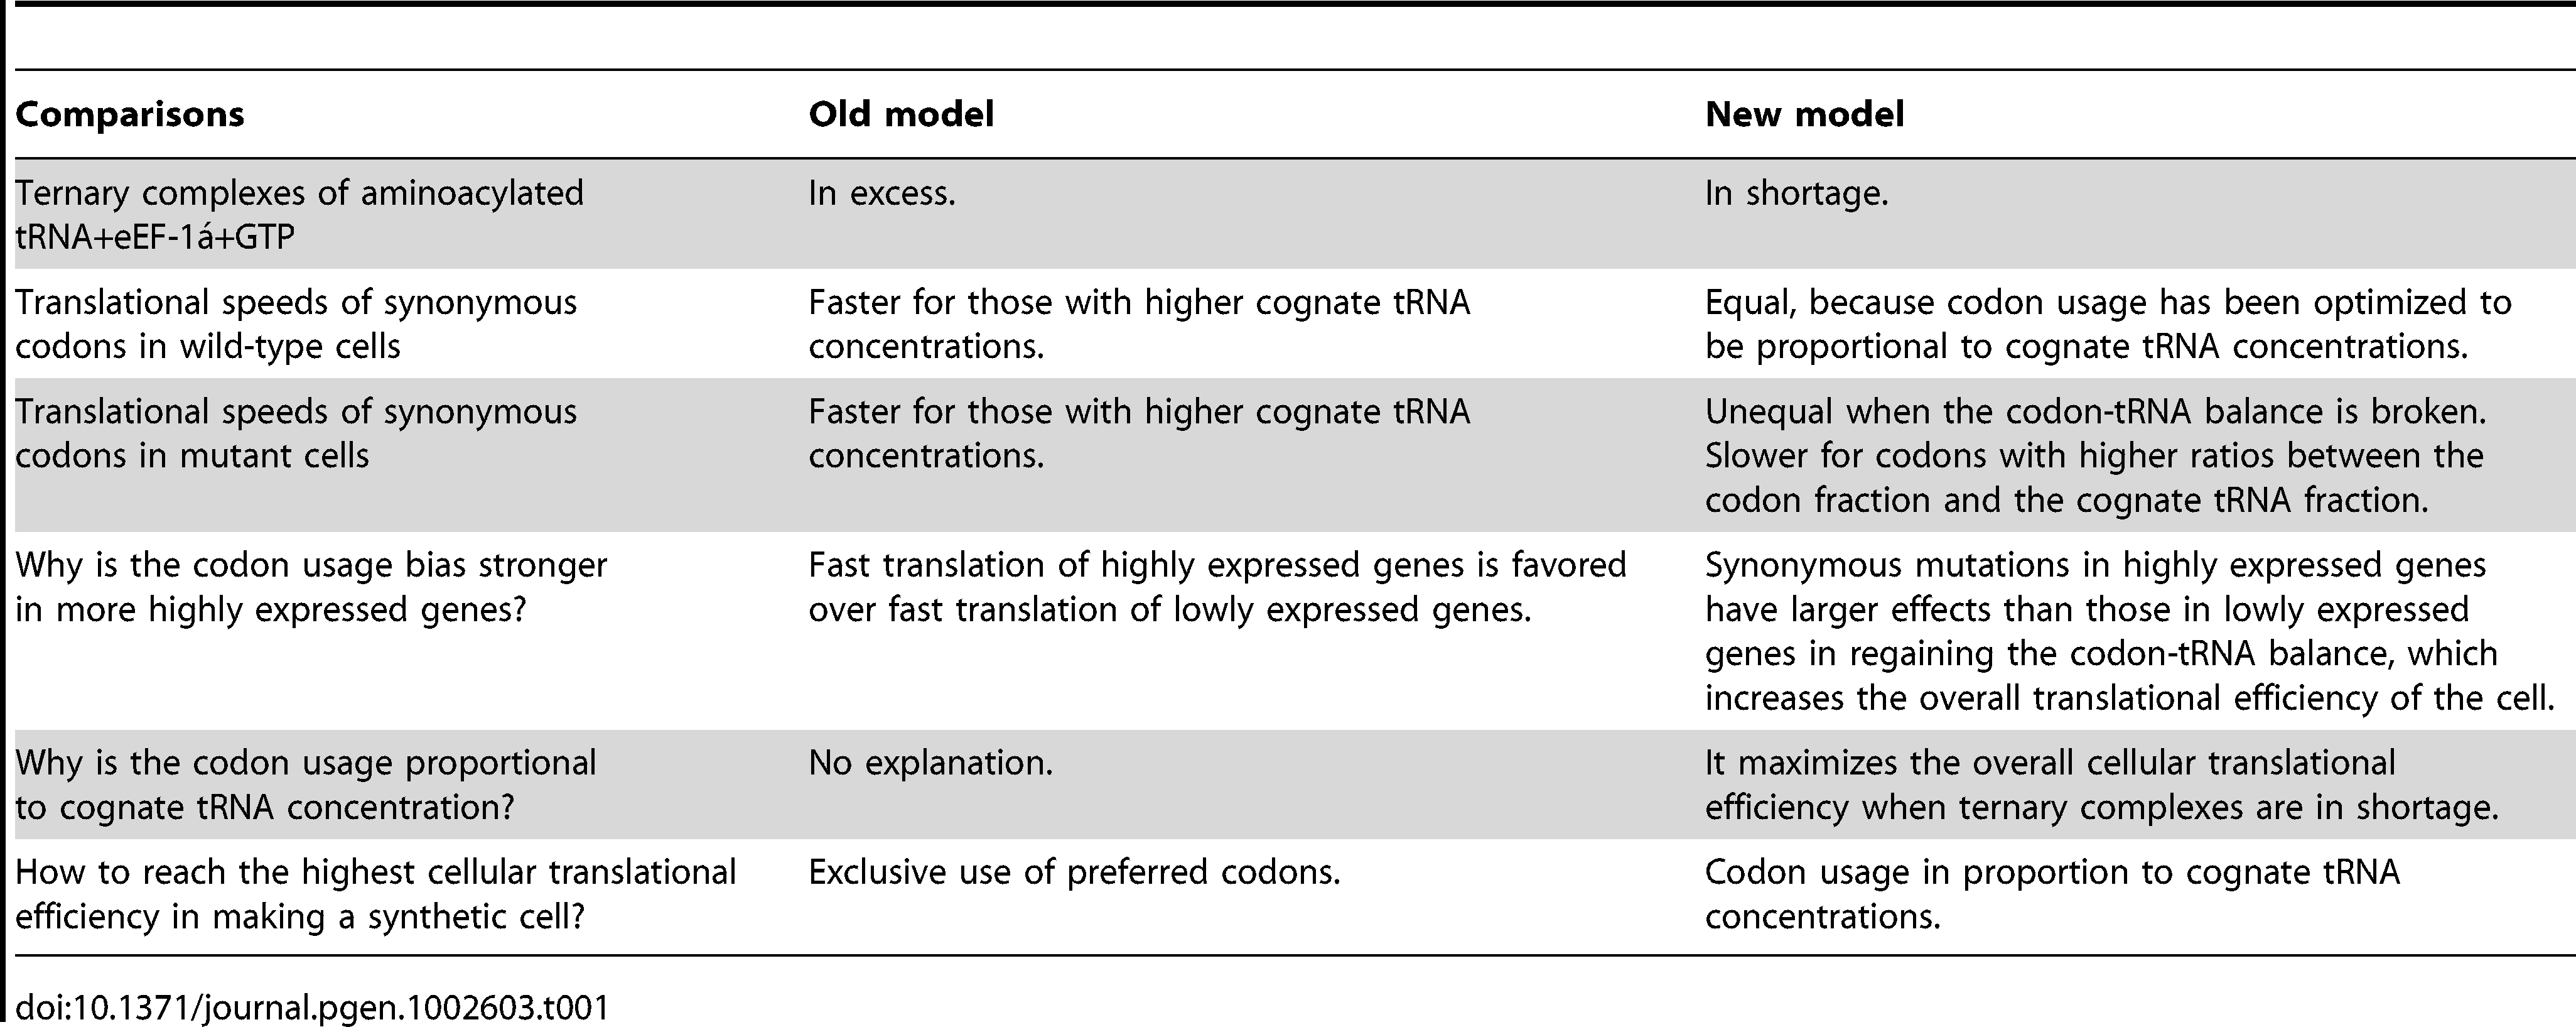 Comparison between the old and new models of translational efficiency by unequal codon usage.